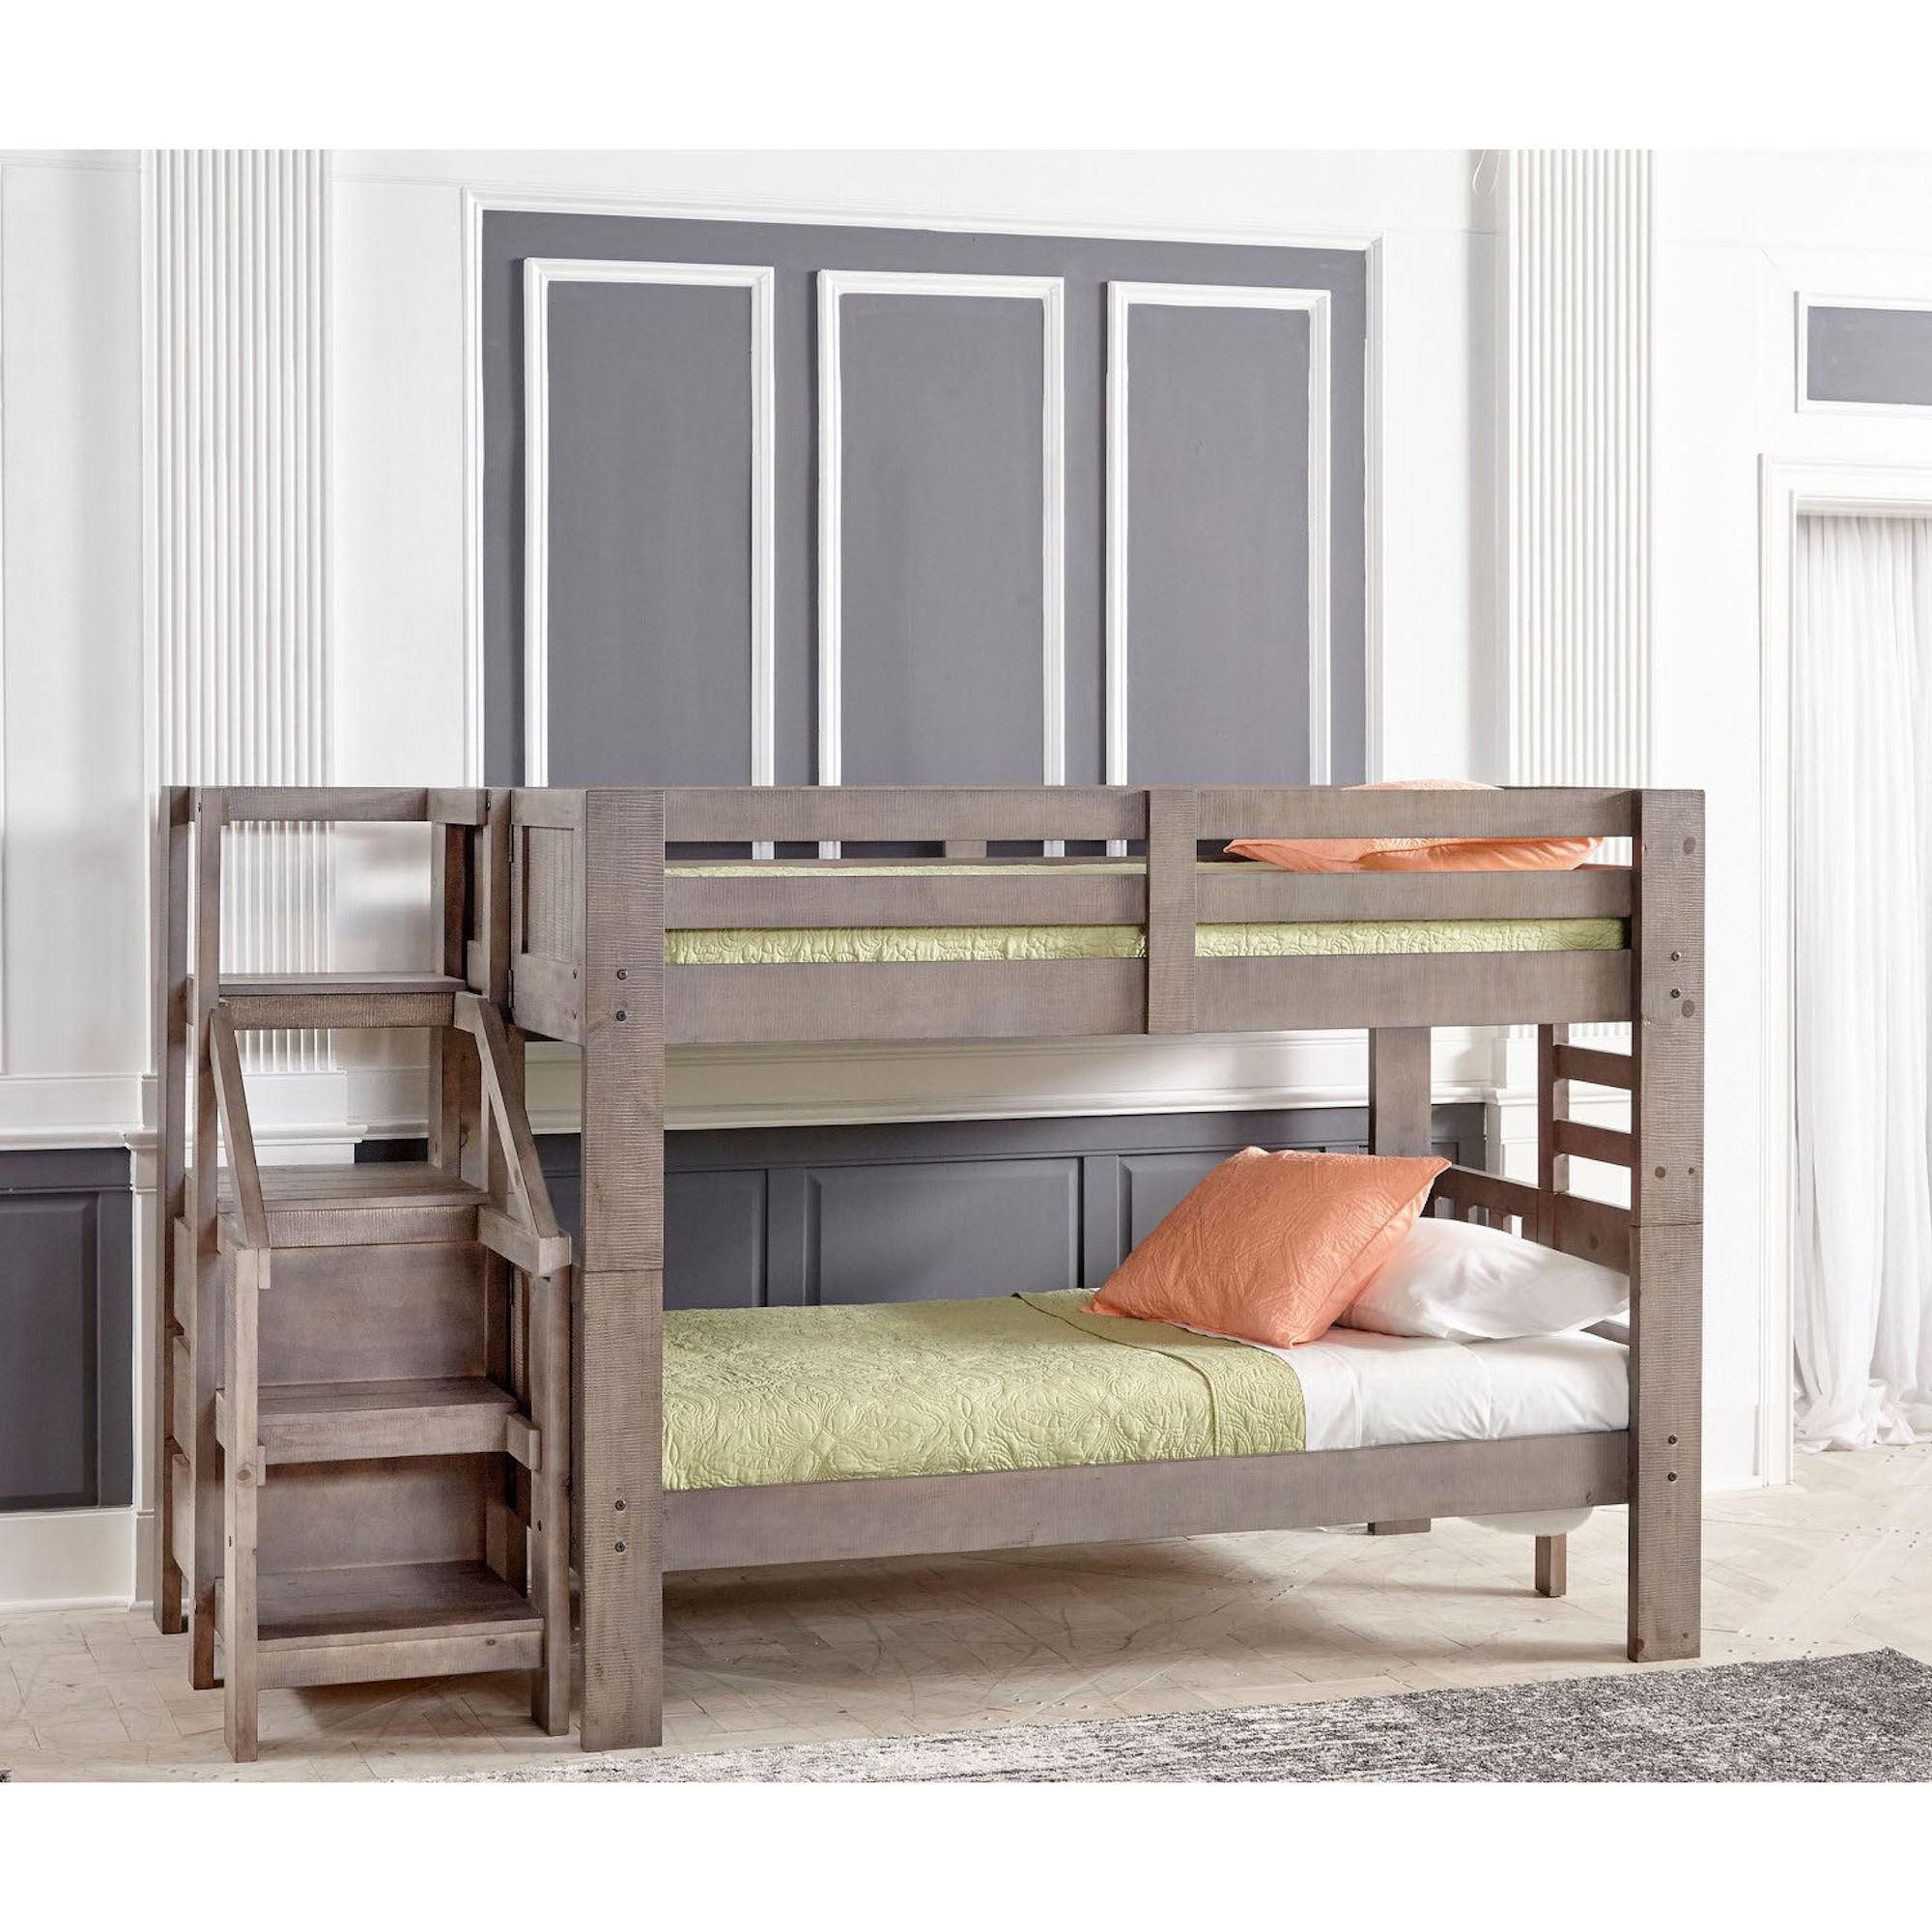 7-Piece Twin Bunk Bed with Staircase \u0026 Mattress Set